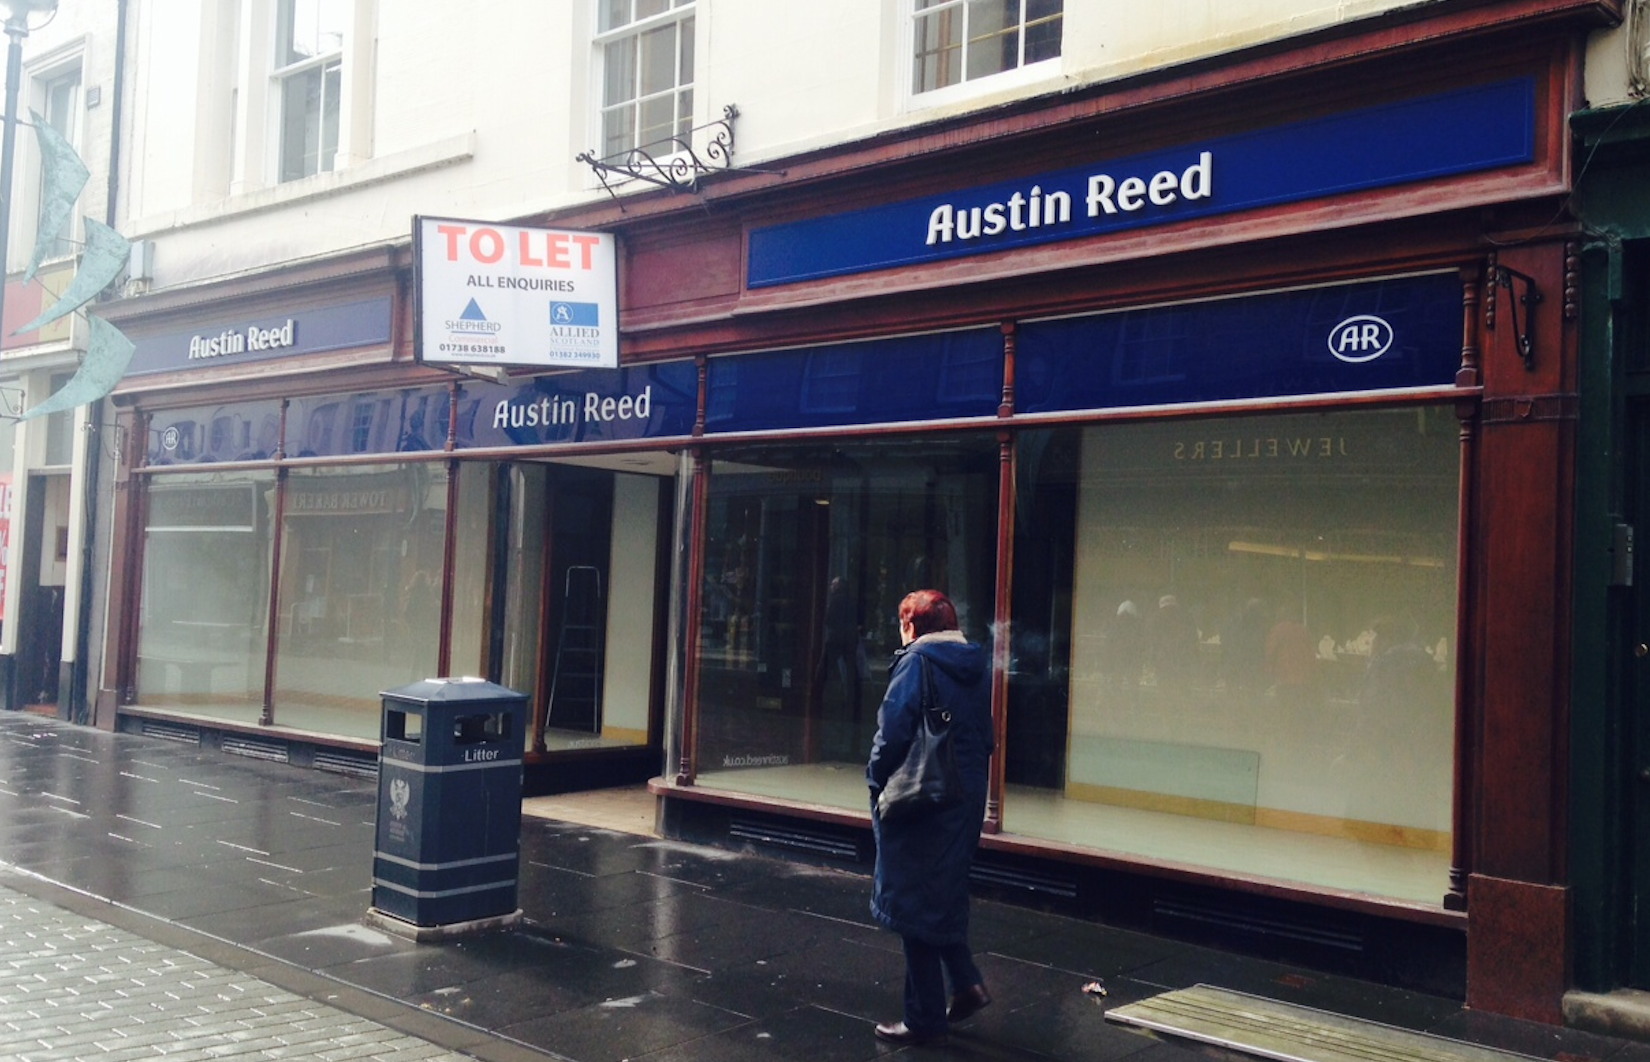 Edinburgh Woollen Mill To Relaunch Austin Reed Daily Business